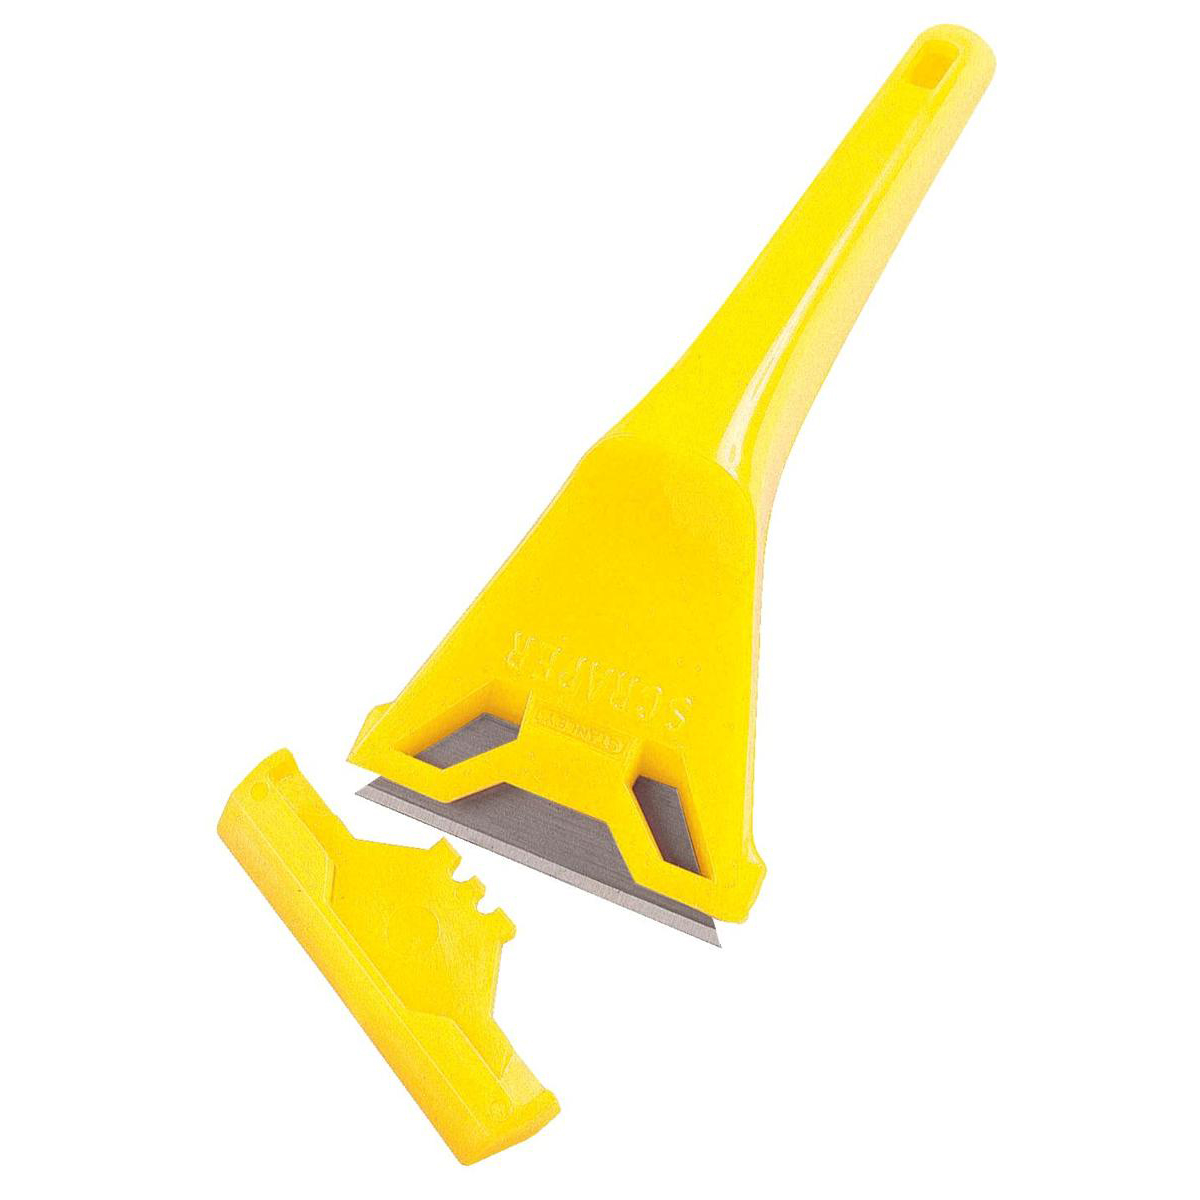 Stanley Window Scraper Yellow Ref 0-28-590